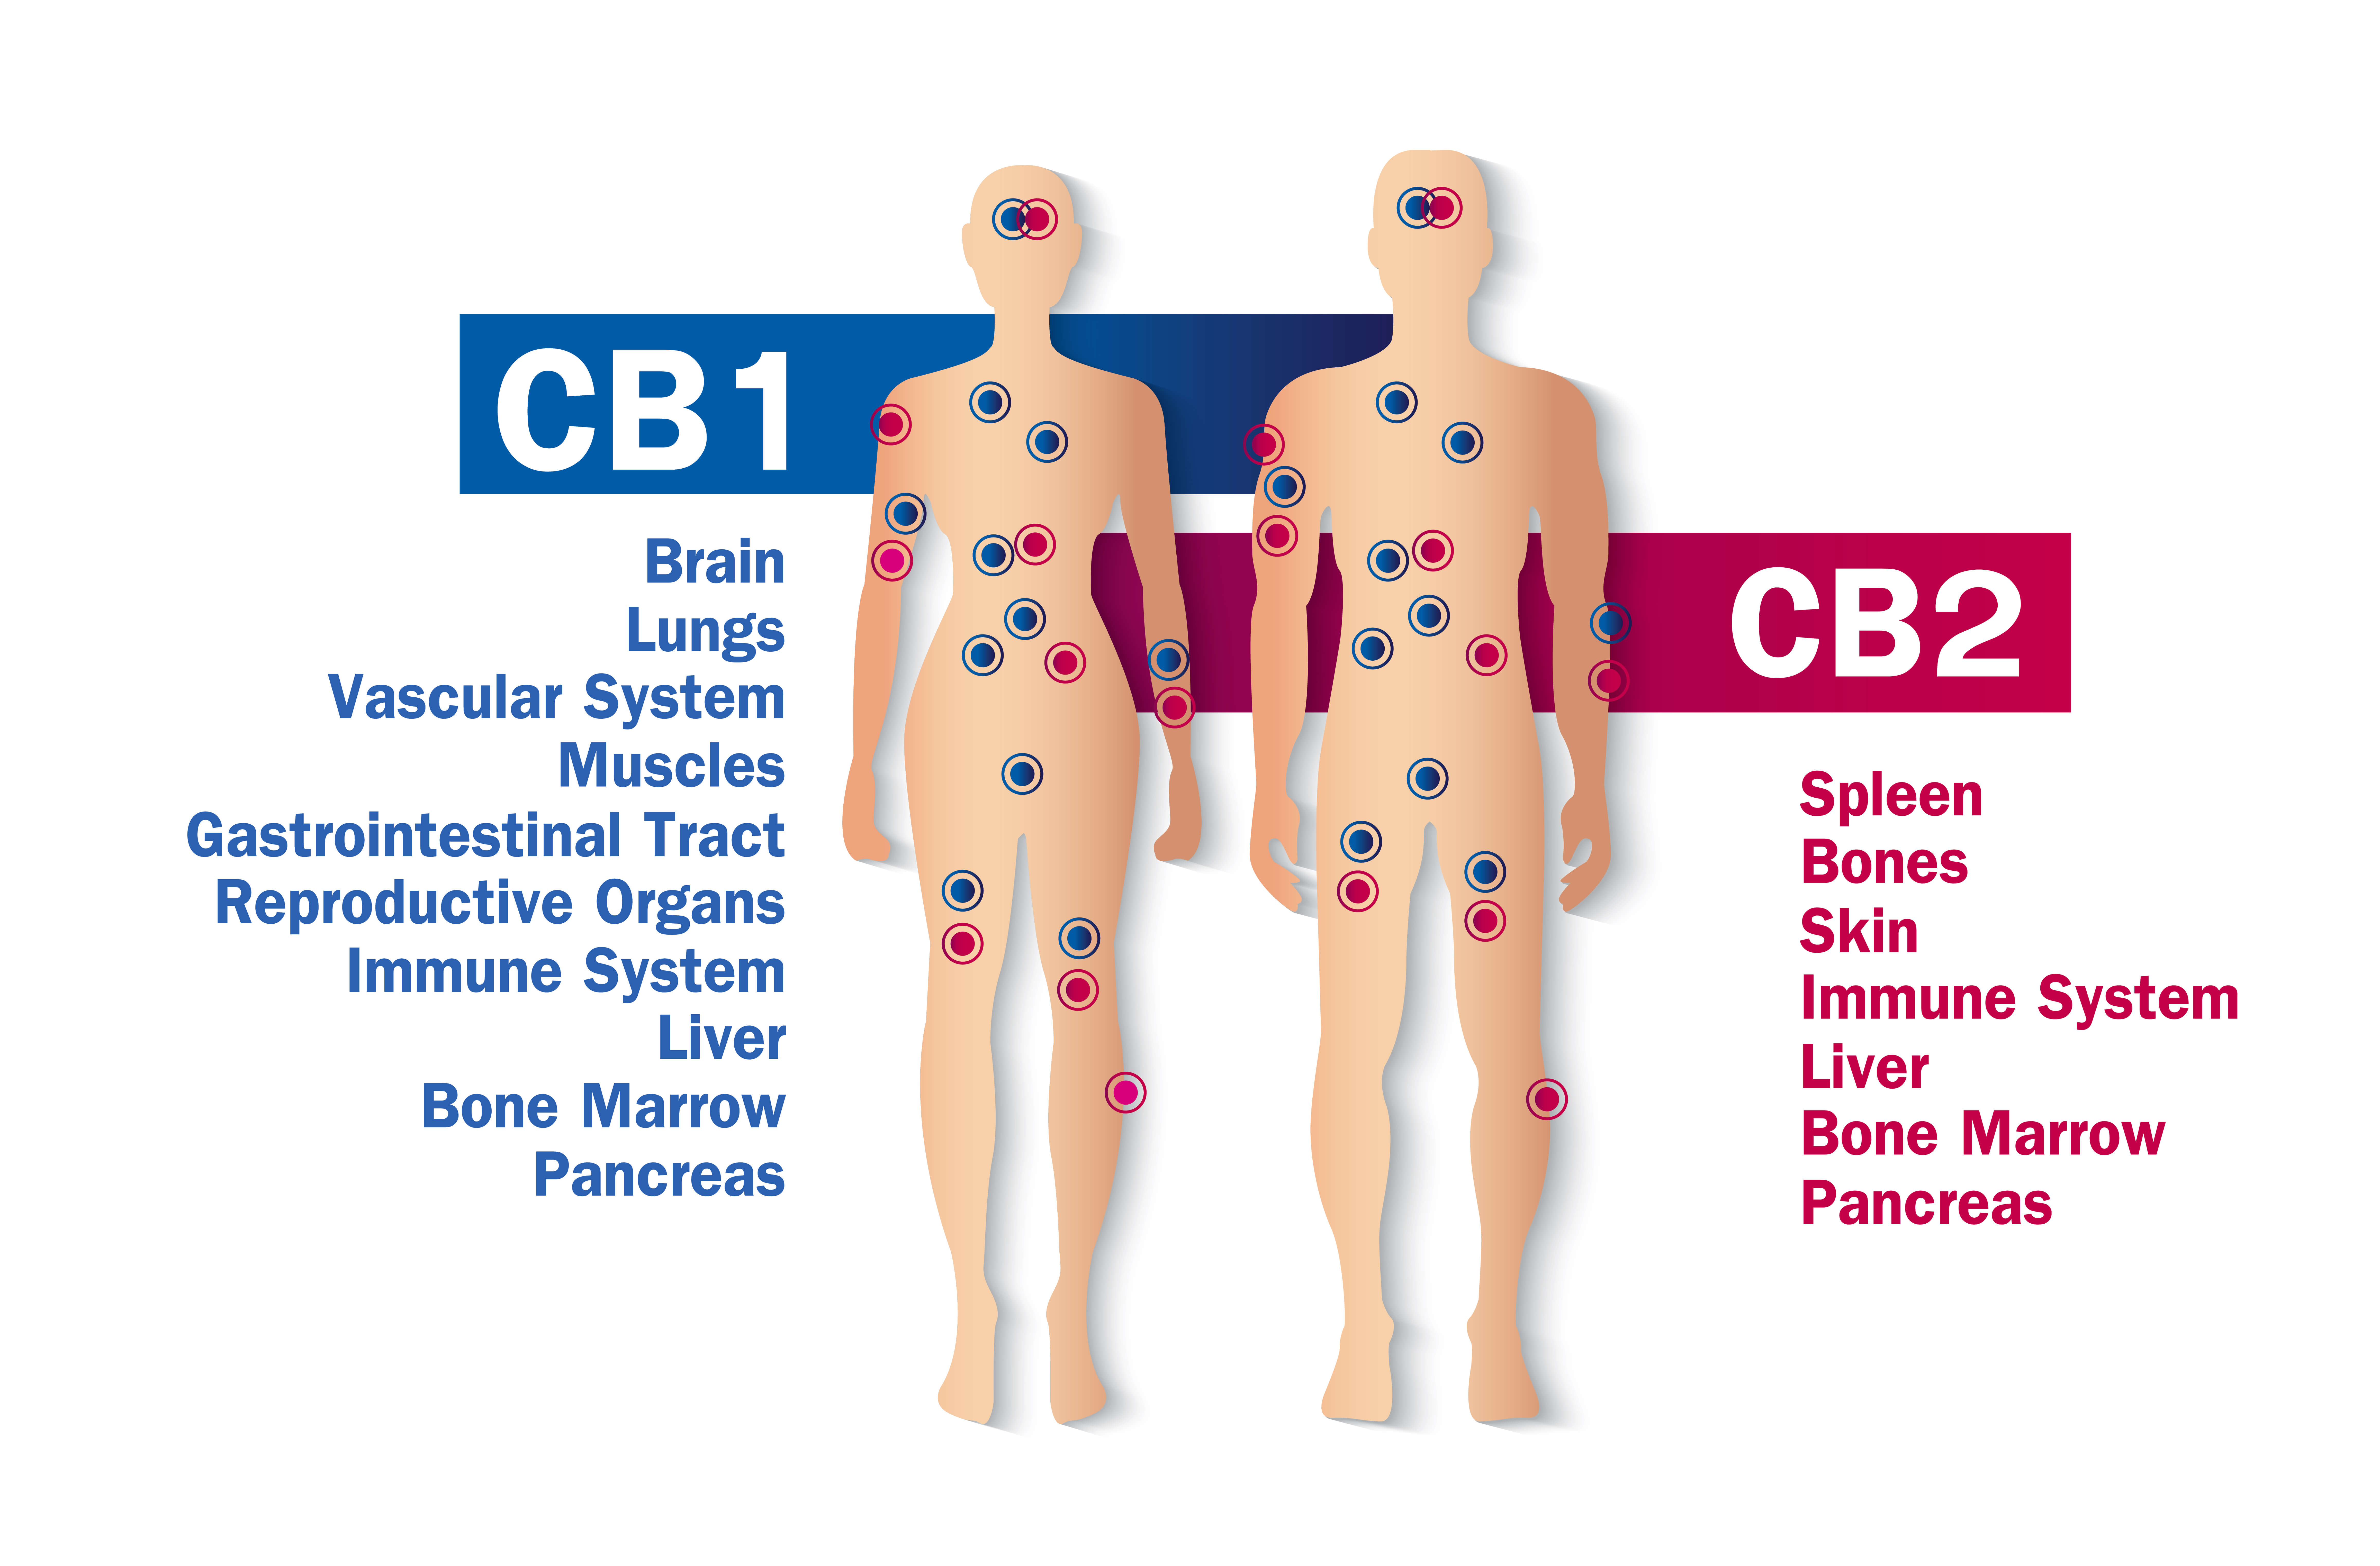 A picture of the endocannabinoid system and CBD effects, highlighting where the CB1 and CB2 receptors are located.